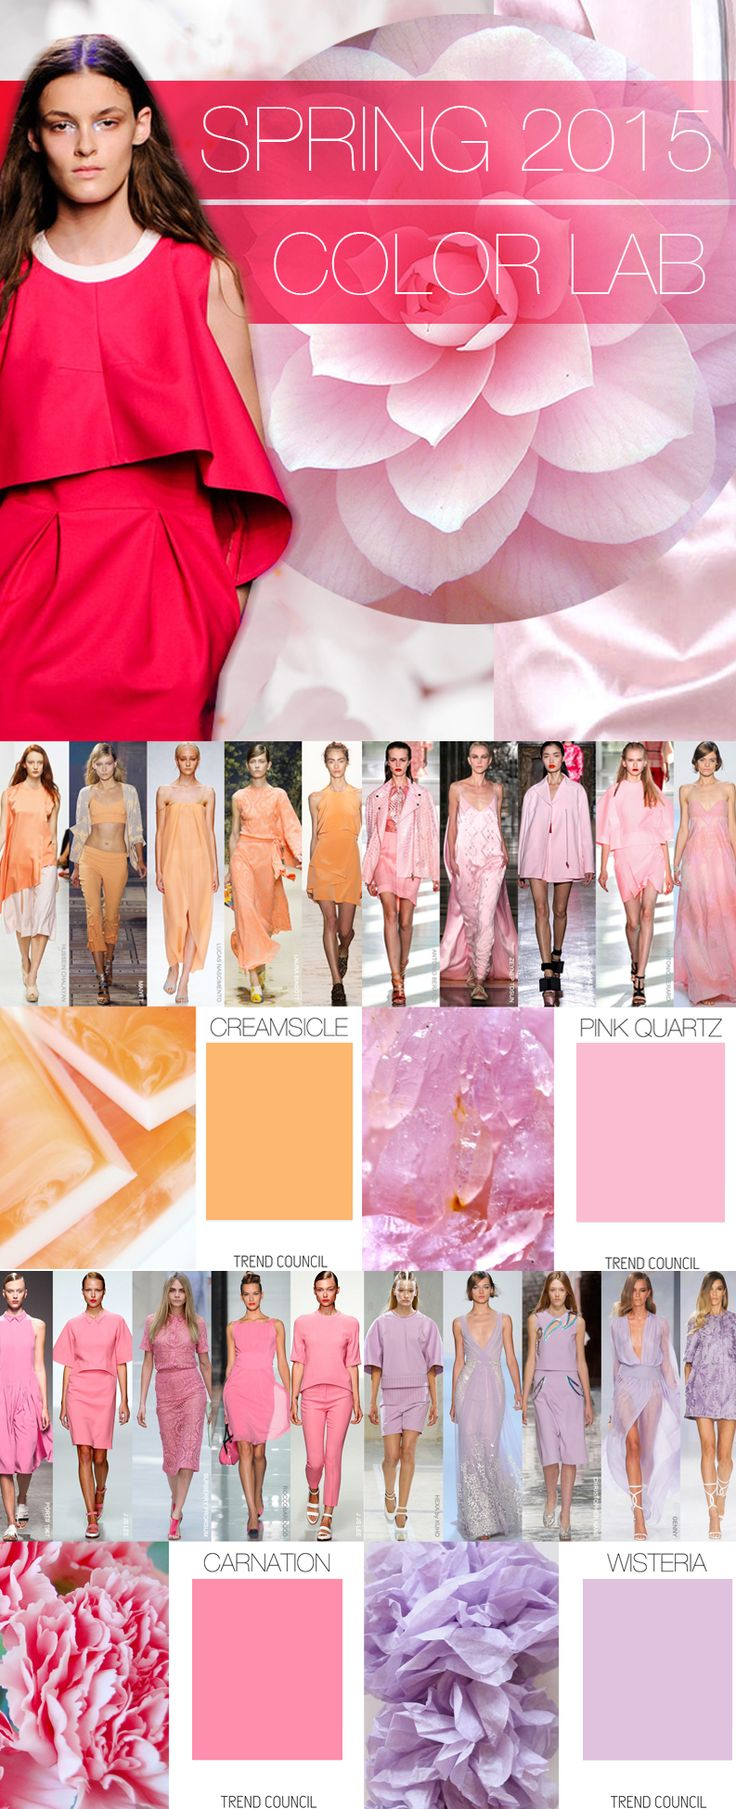 Trend Council: Spring 2015 Color Lab